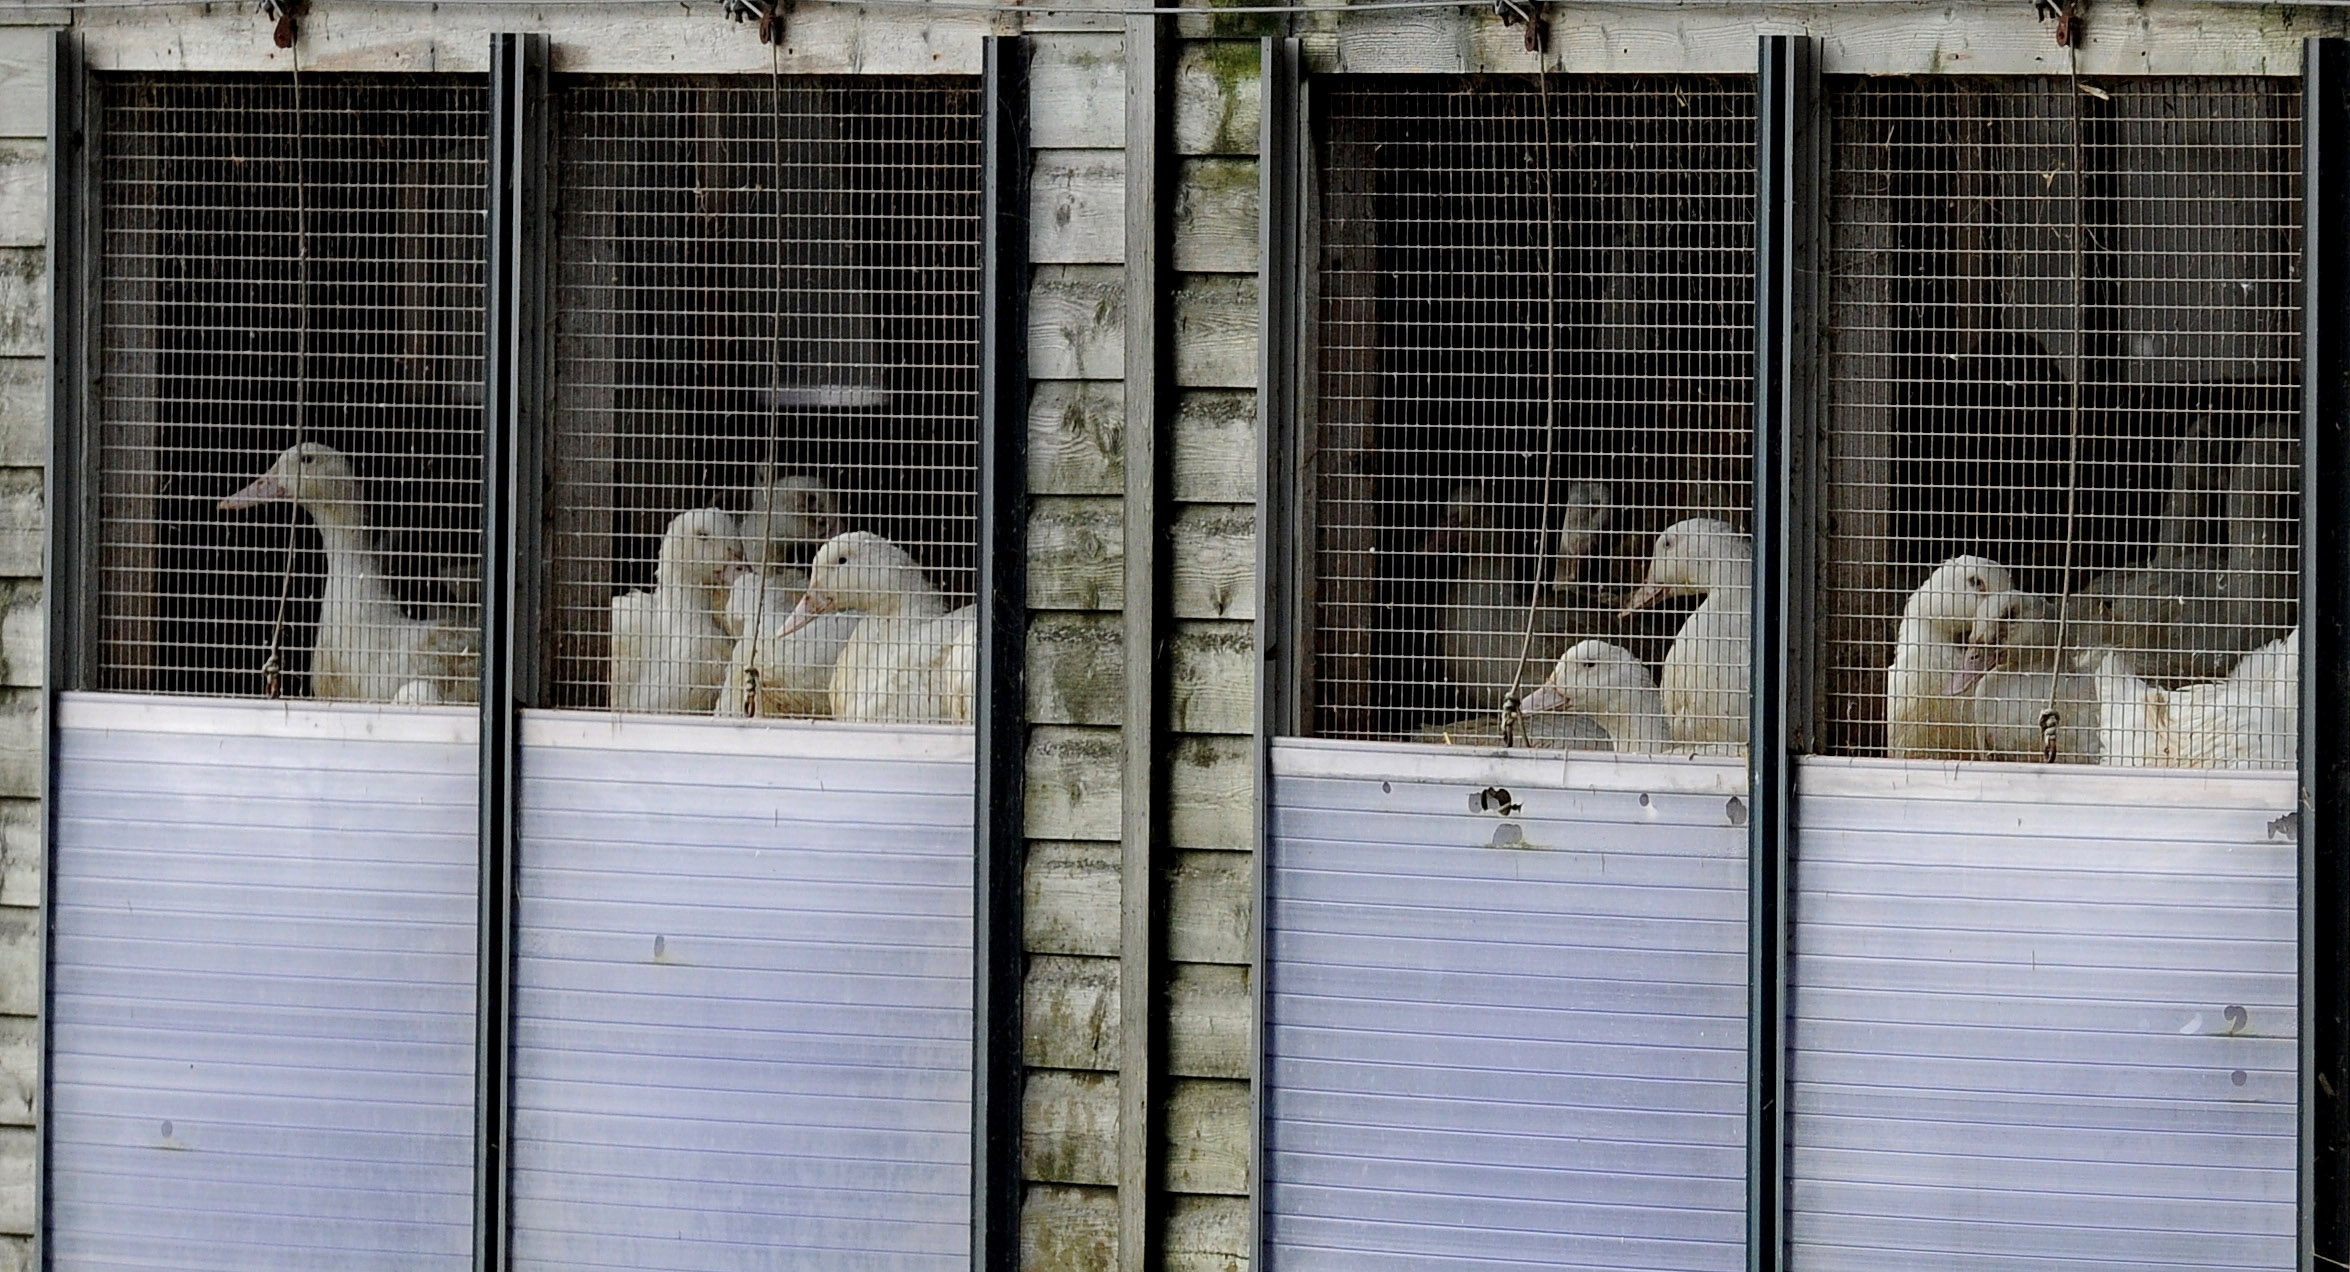 Ducks in a shed on a farm near Yorkshire, England where a strain of bird flu has been confirmed.